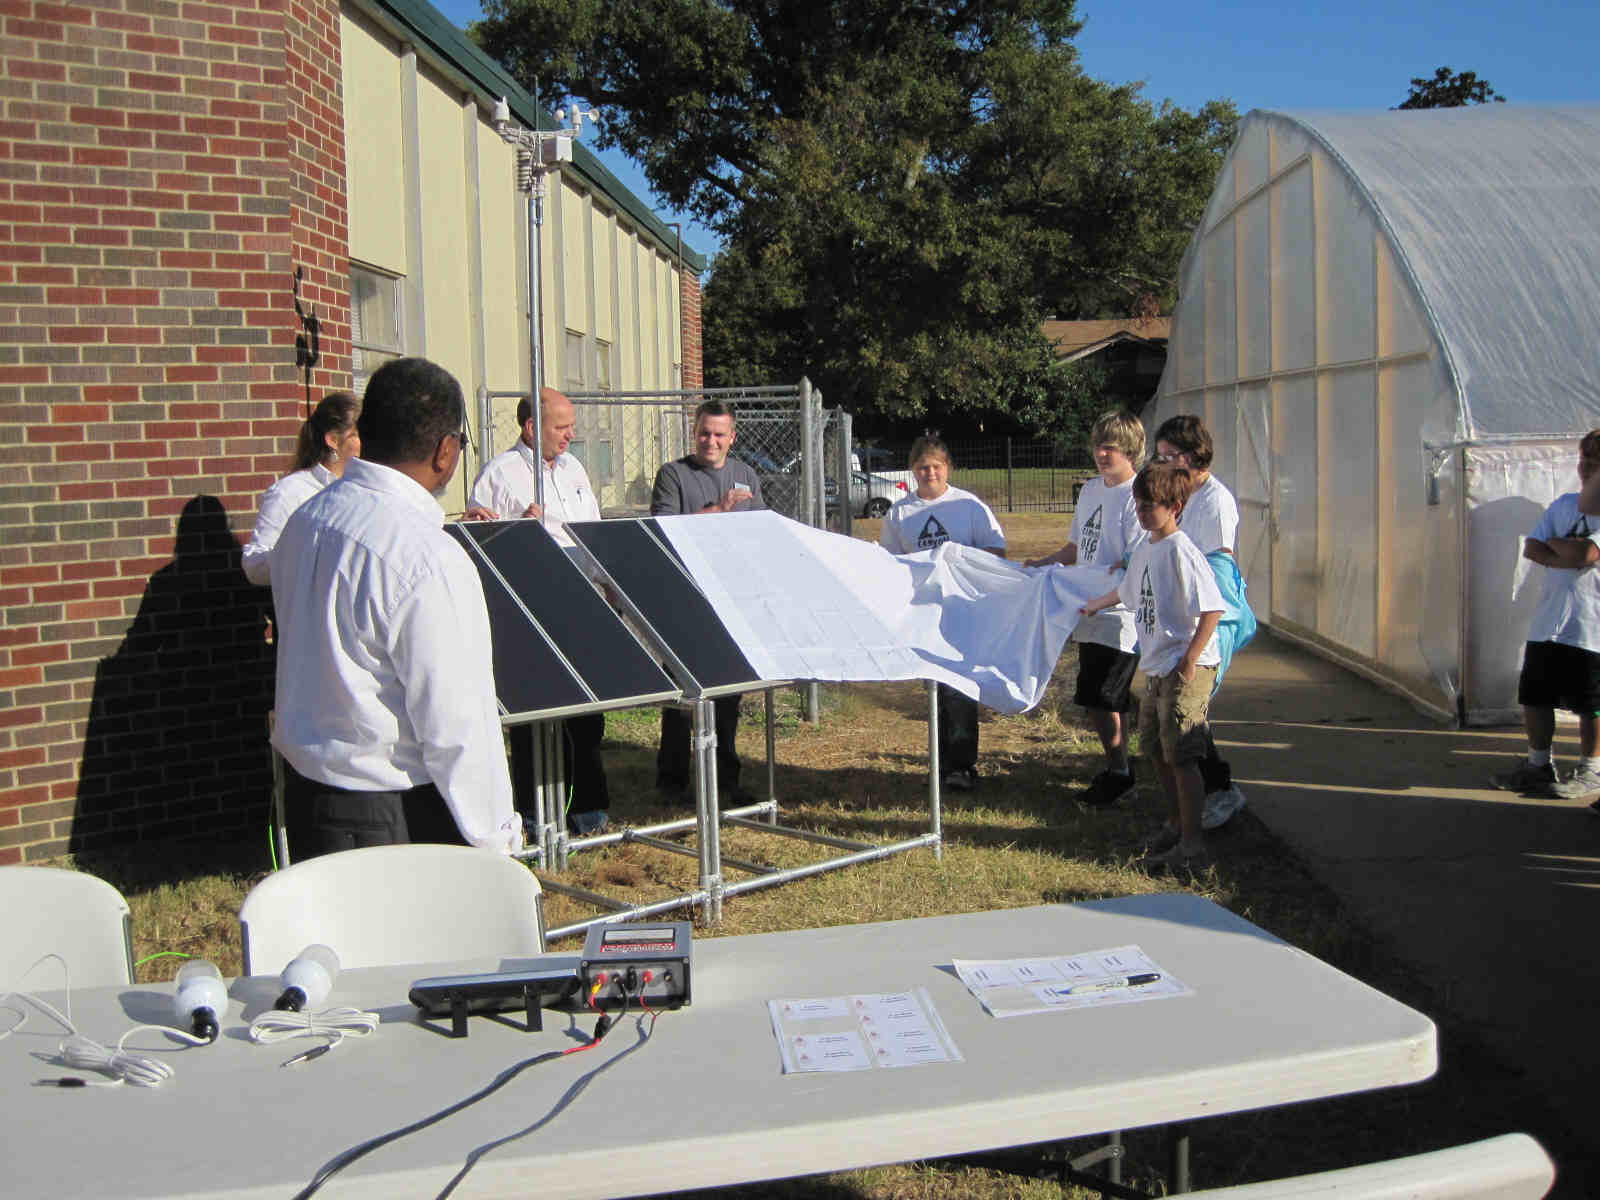 Students and faculity unveil their new solar array while members of MAREH assist.